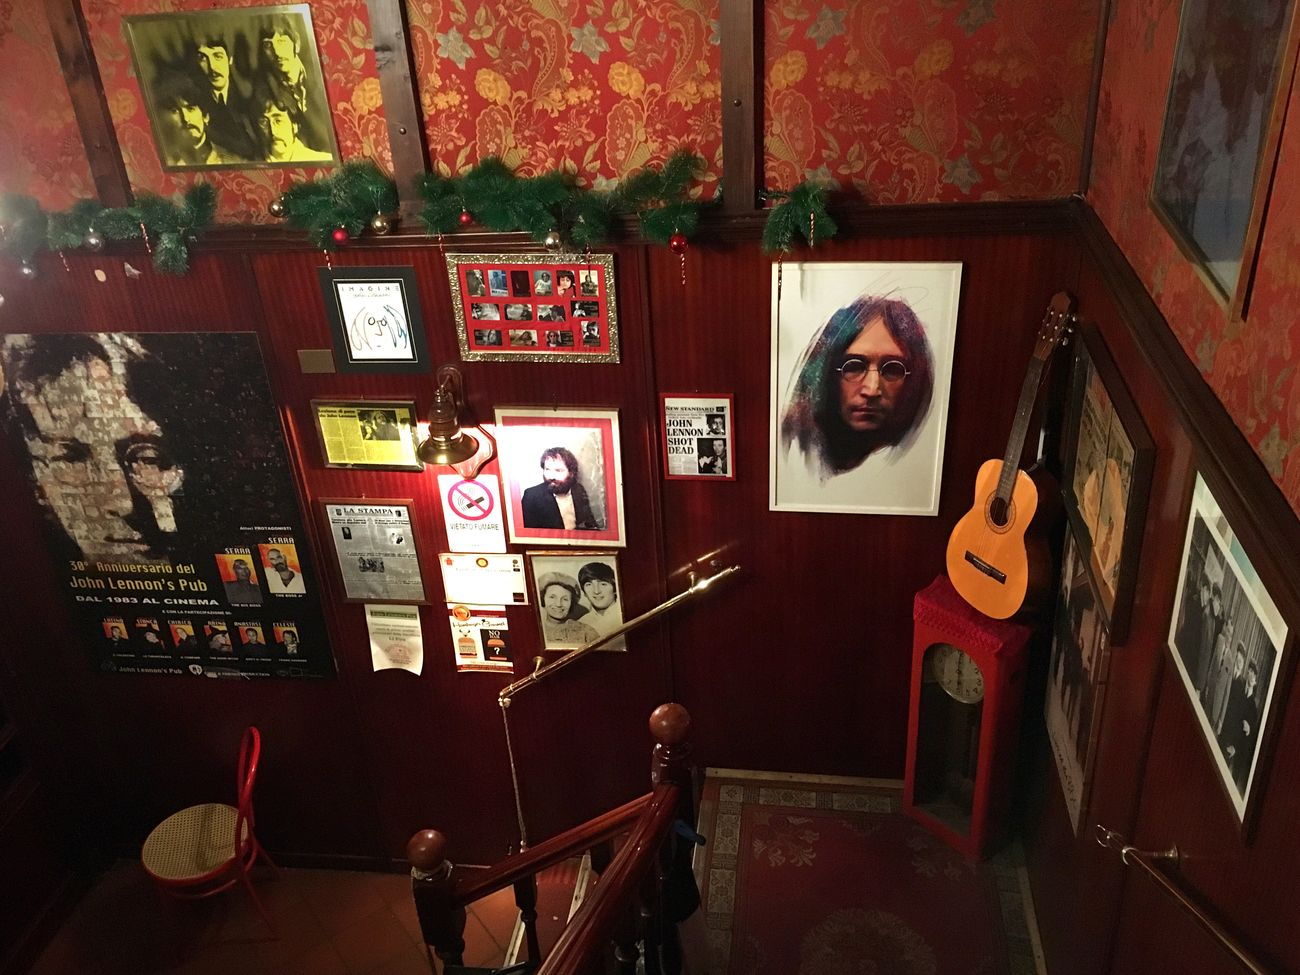 TakeoverMusic Italy Italia Torino Turin Music Rock 70s Peace Love John Lennon Beatles Architecture Pub Travel Travel Destinations Travel Photography Indoors